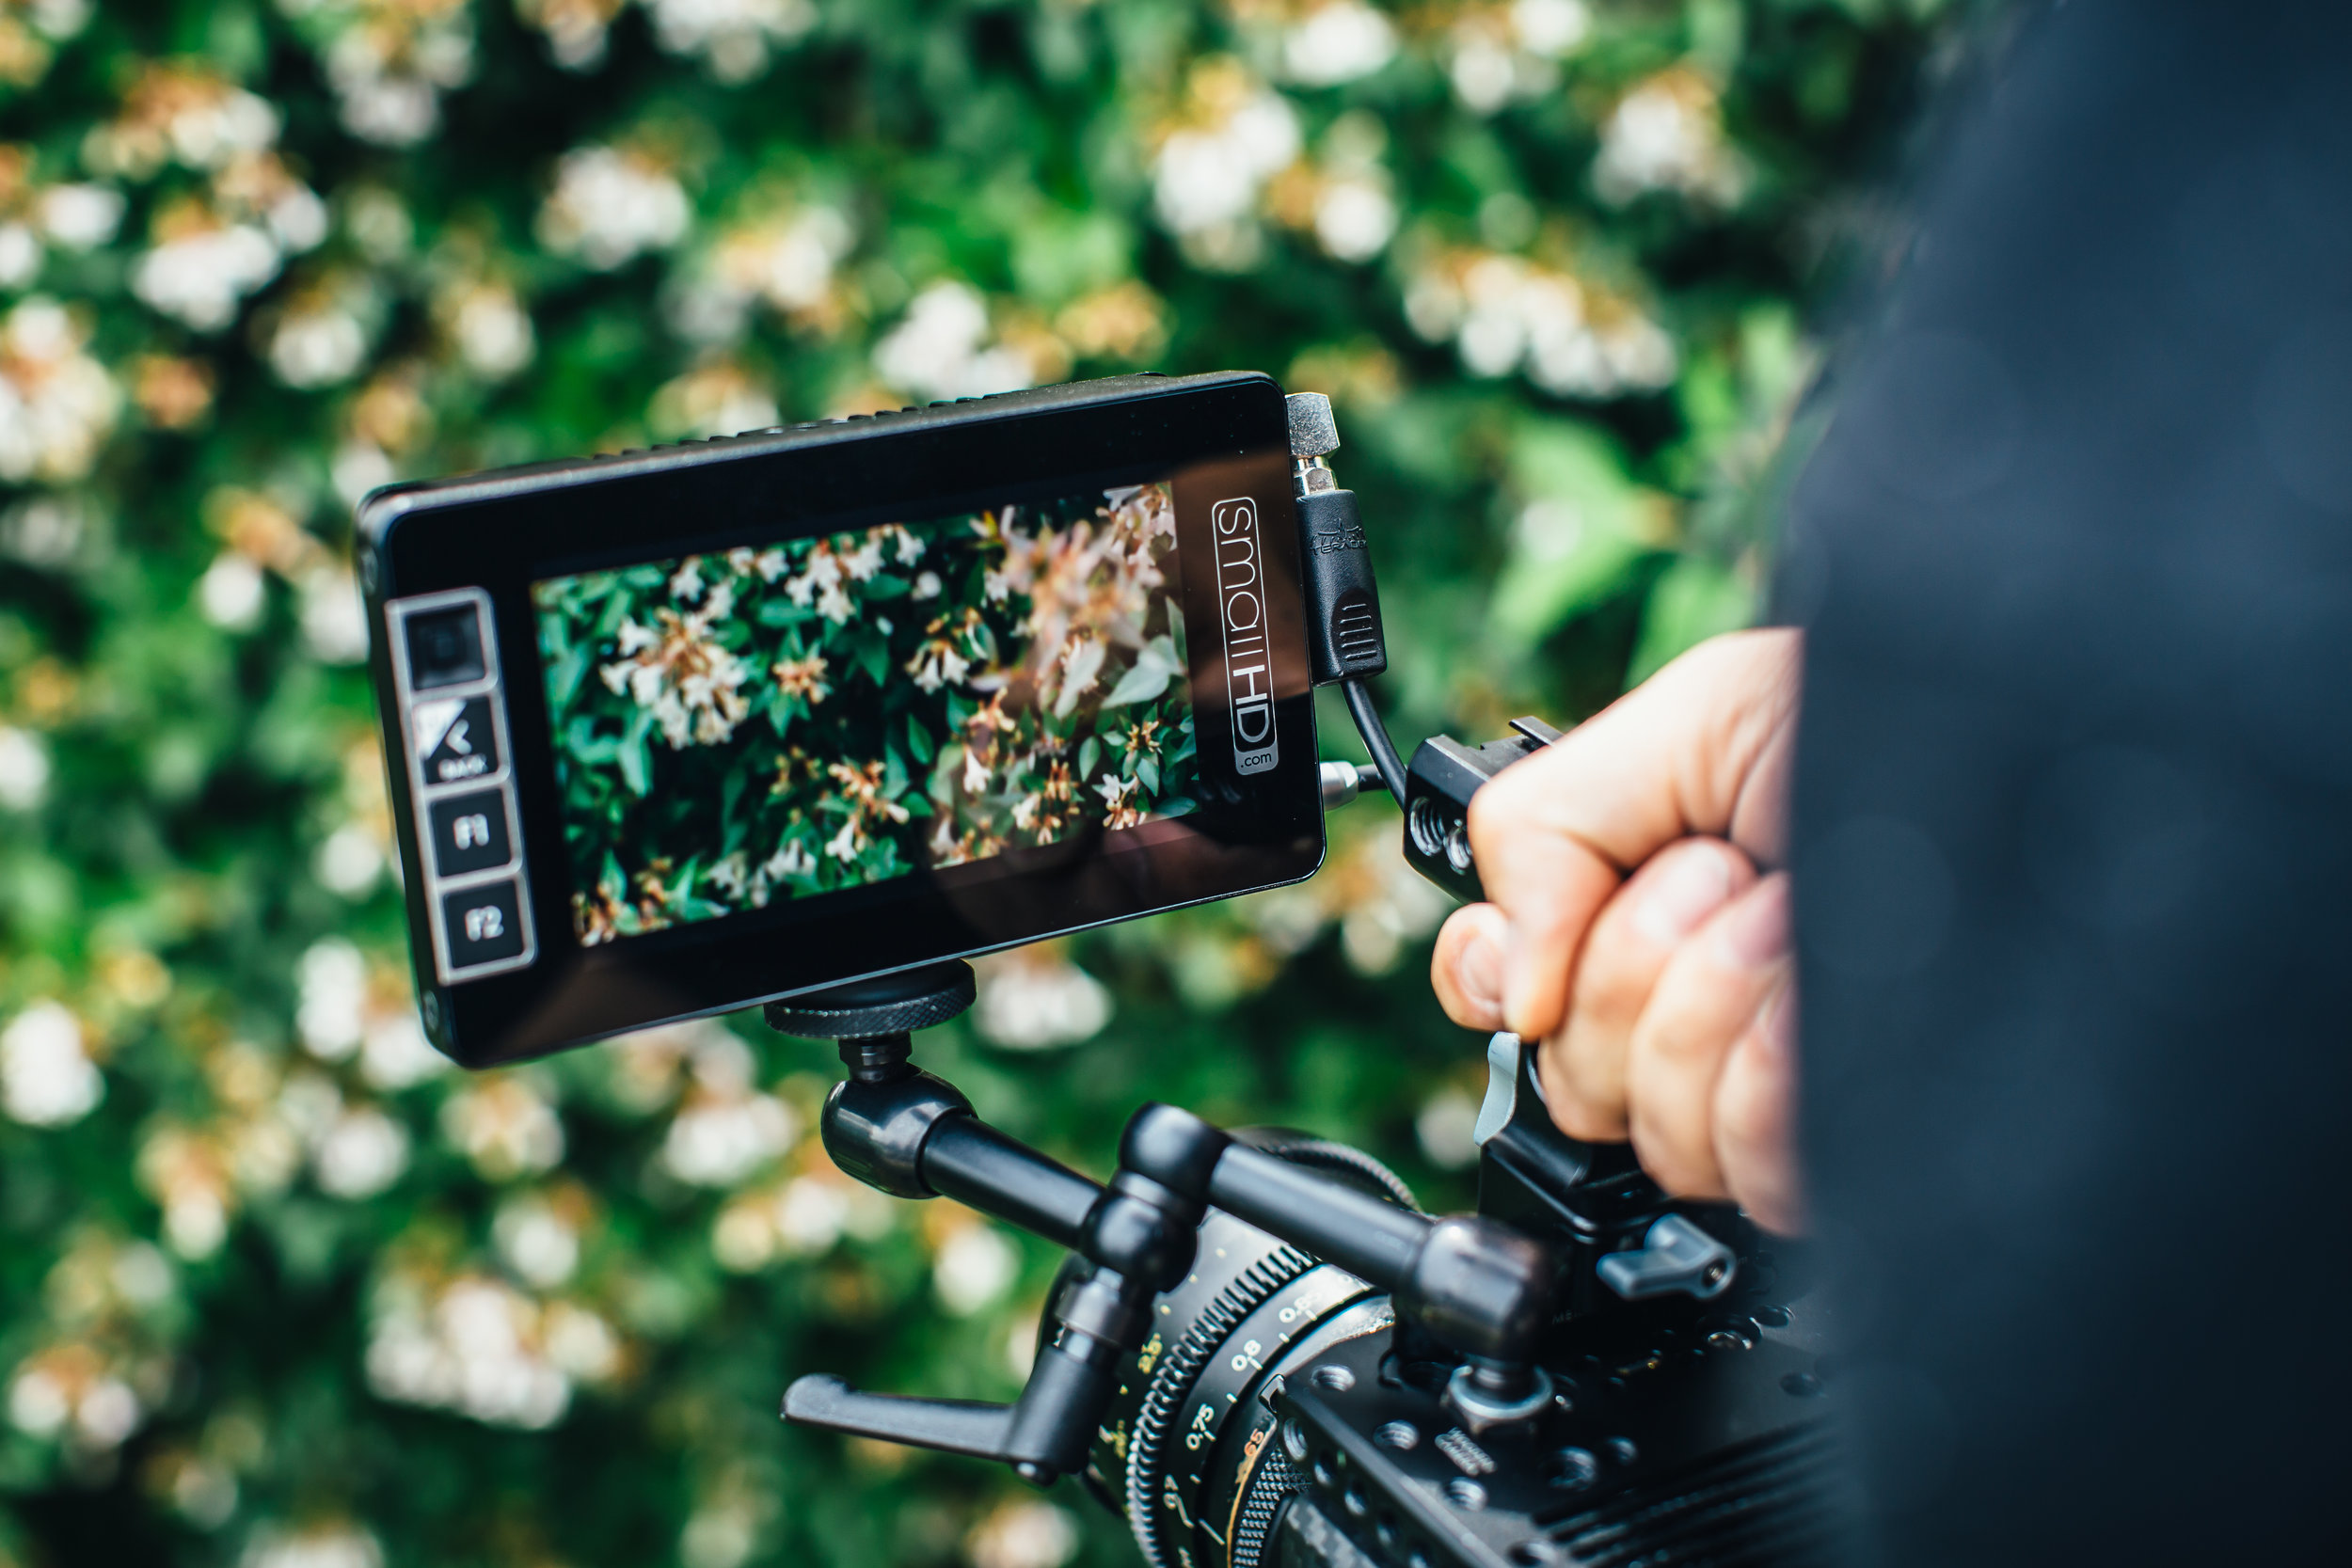 SmallHD 503 UltraBright